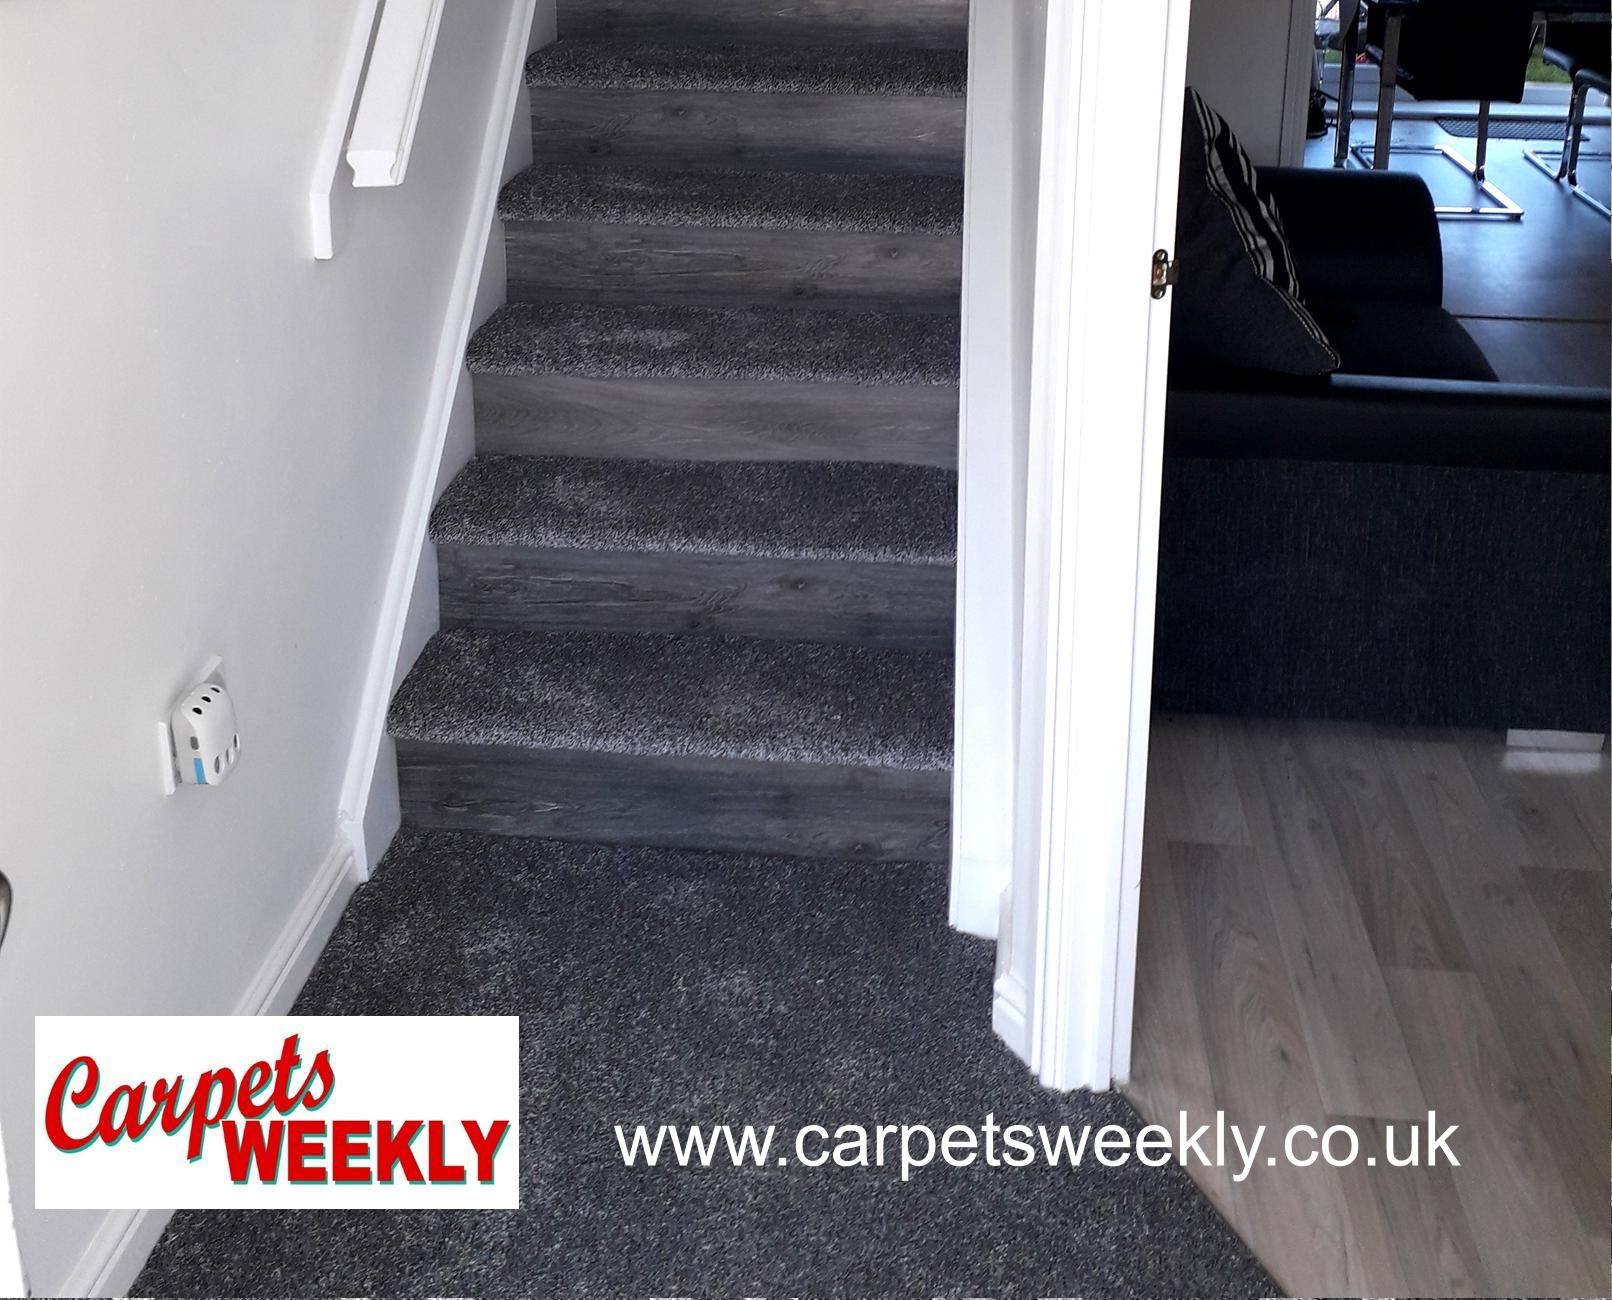 Carpets Weekly, Combi Stairs - Apollo Dark Grey Carpet and NEW Grey Oak LVT on the risers